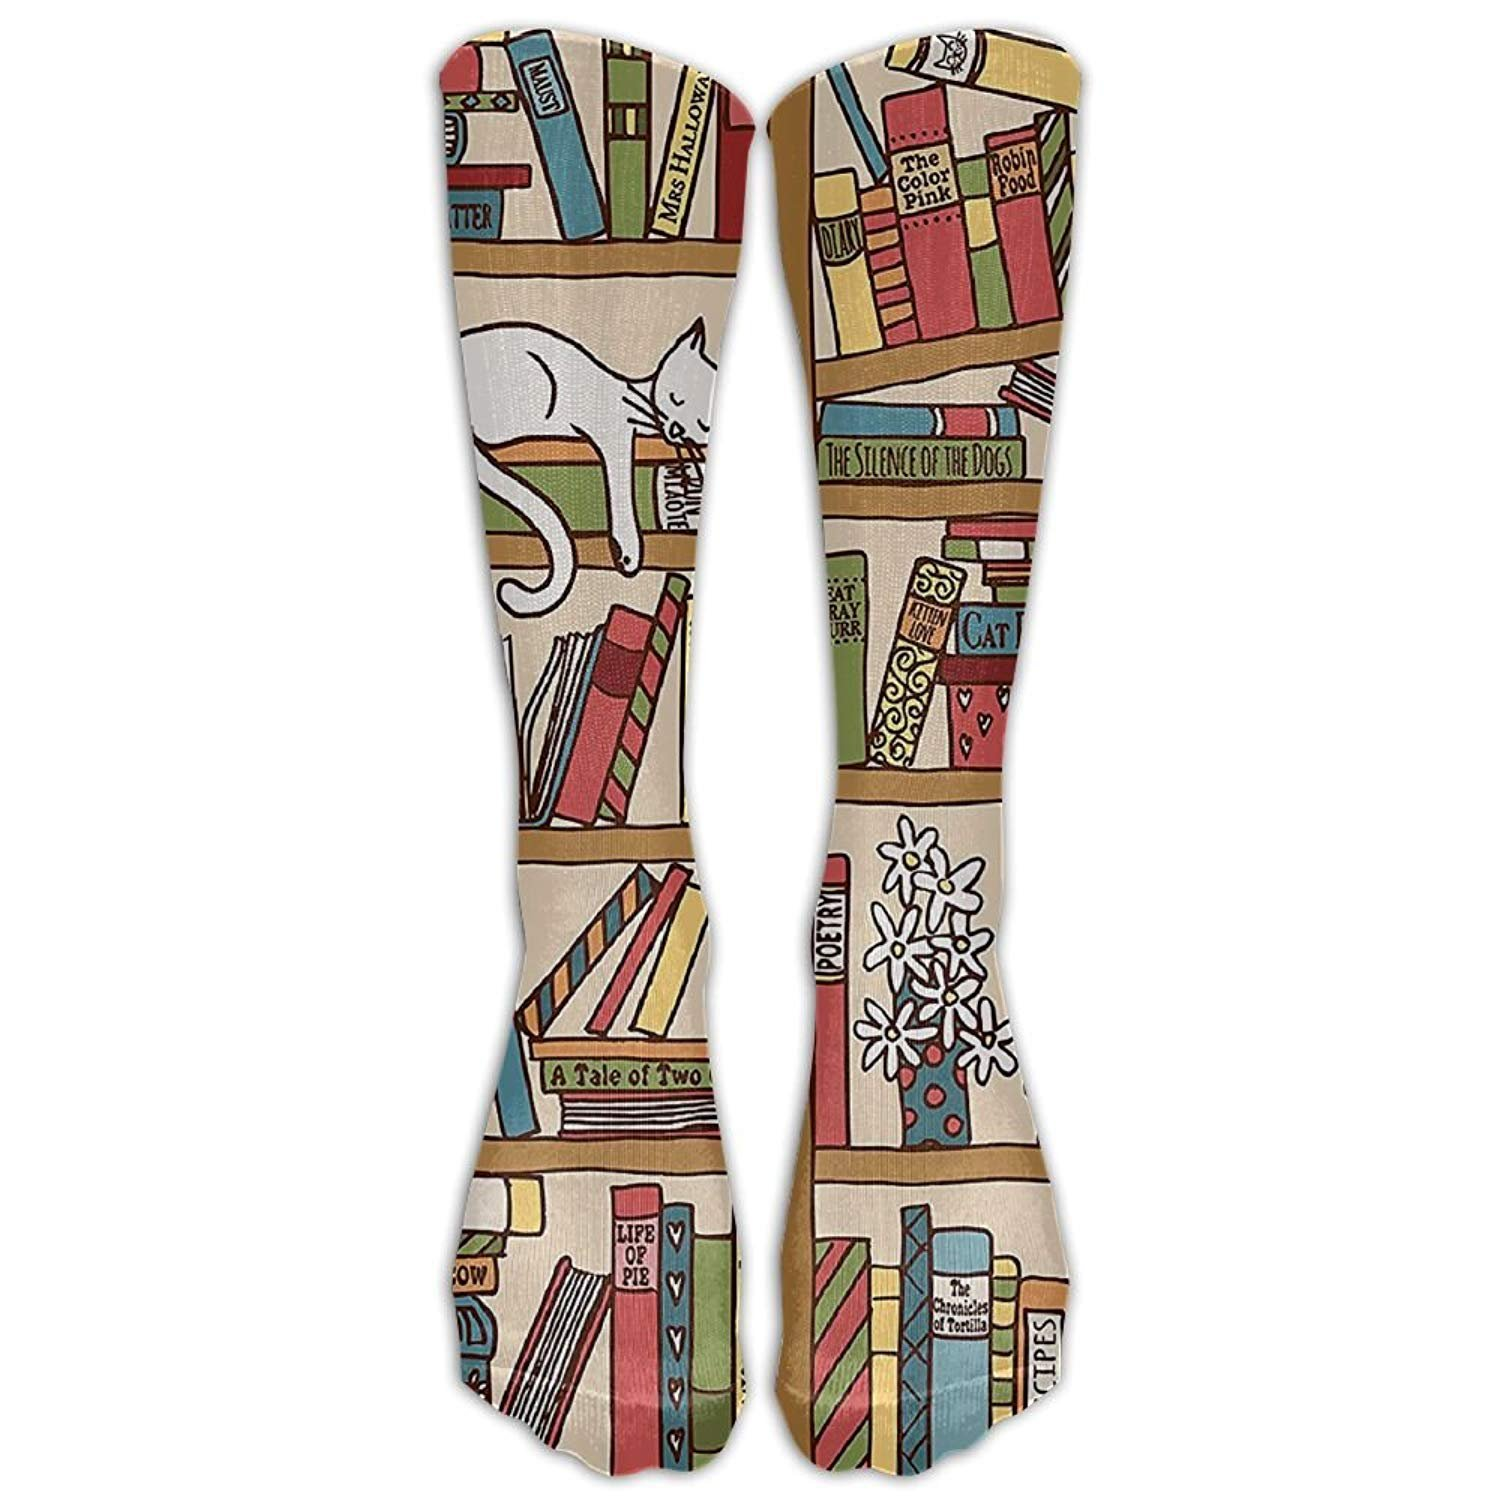 pigyear888 Style Unisex Socks Casual Knee High Stockings Nerd Book Lover Kitty Sleeping Over Bookshelf In Library Cotton Socks One Size 8723027390900